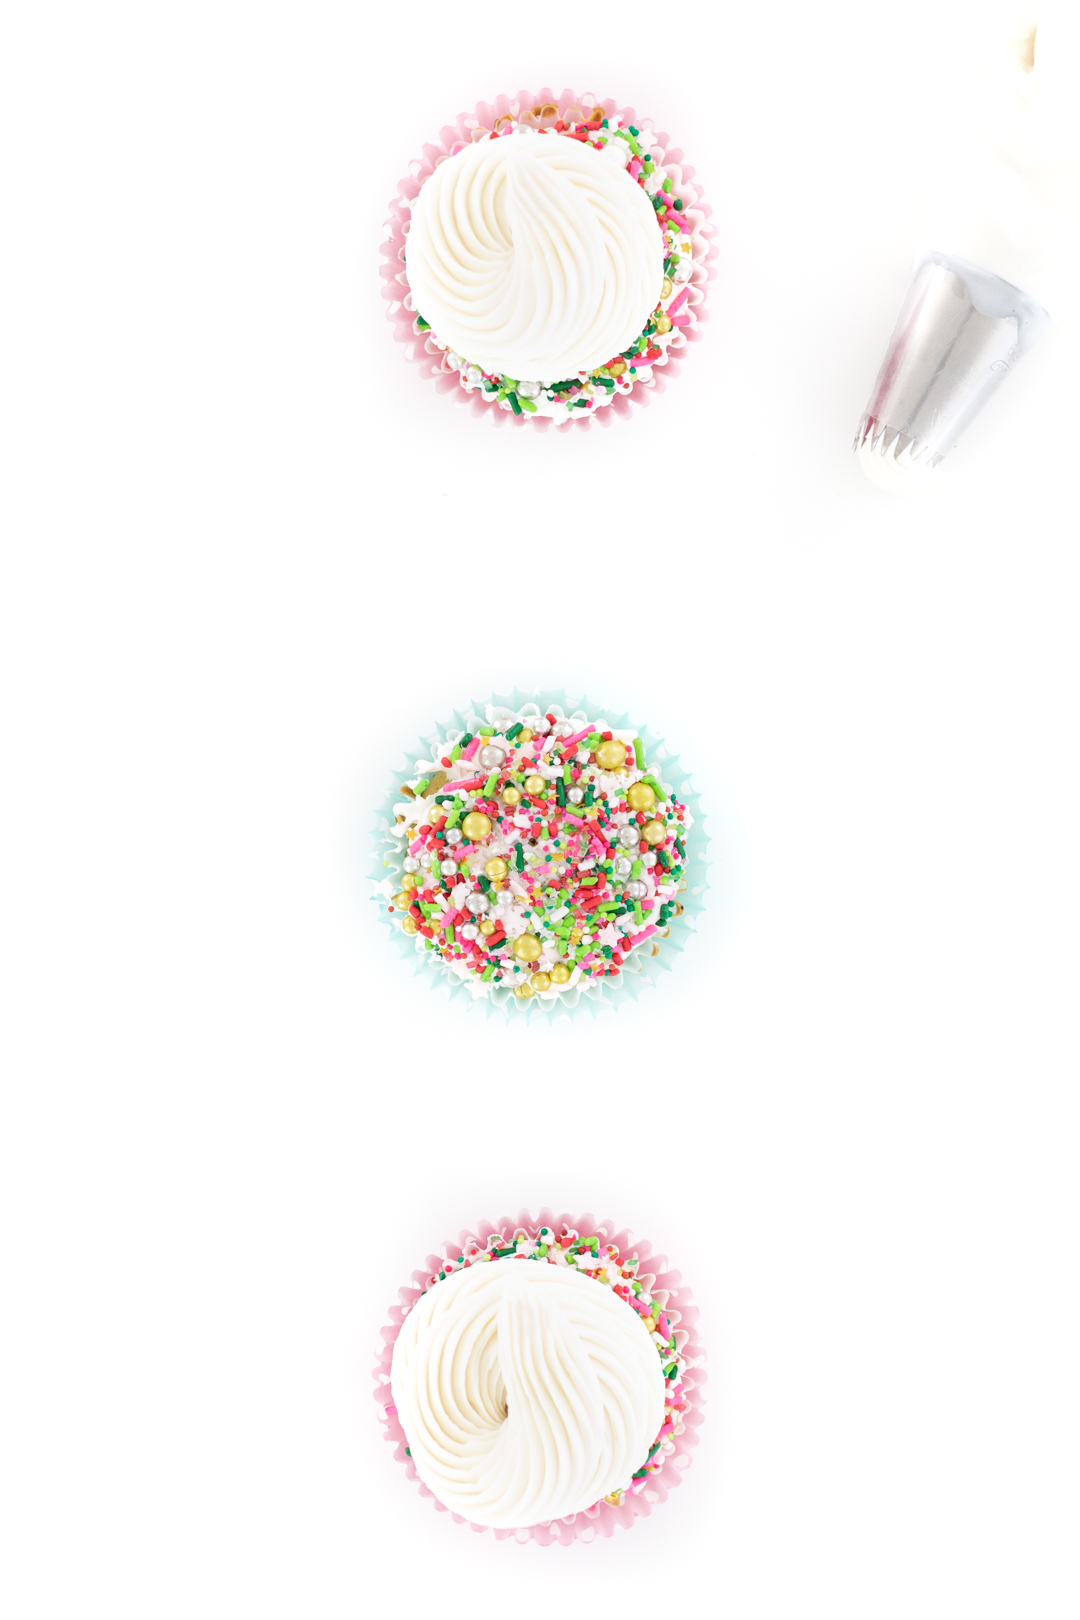 demonstration of how to put sprinkles on cupcakes